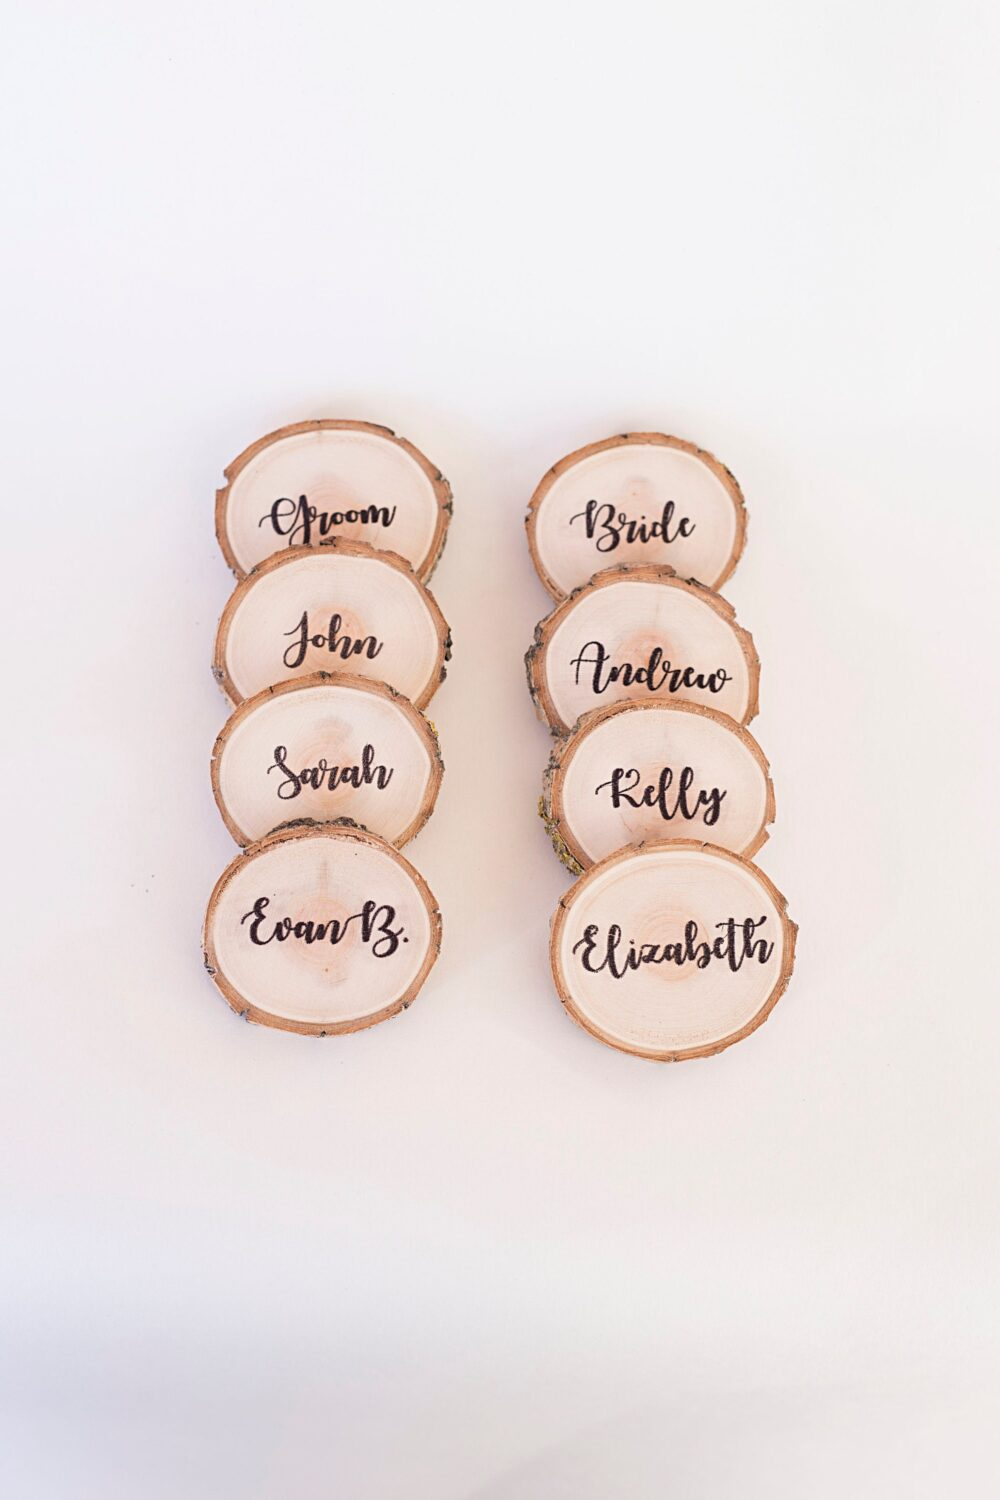 10 Rustic Wedding Place Cards, Wood Name Card, Card With Bark, Personalized Slice Log